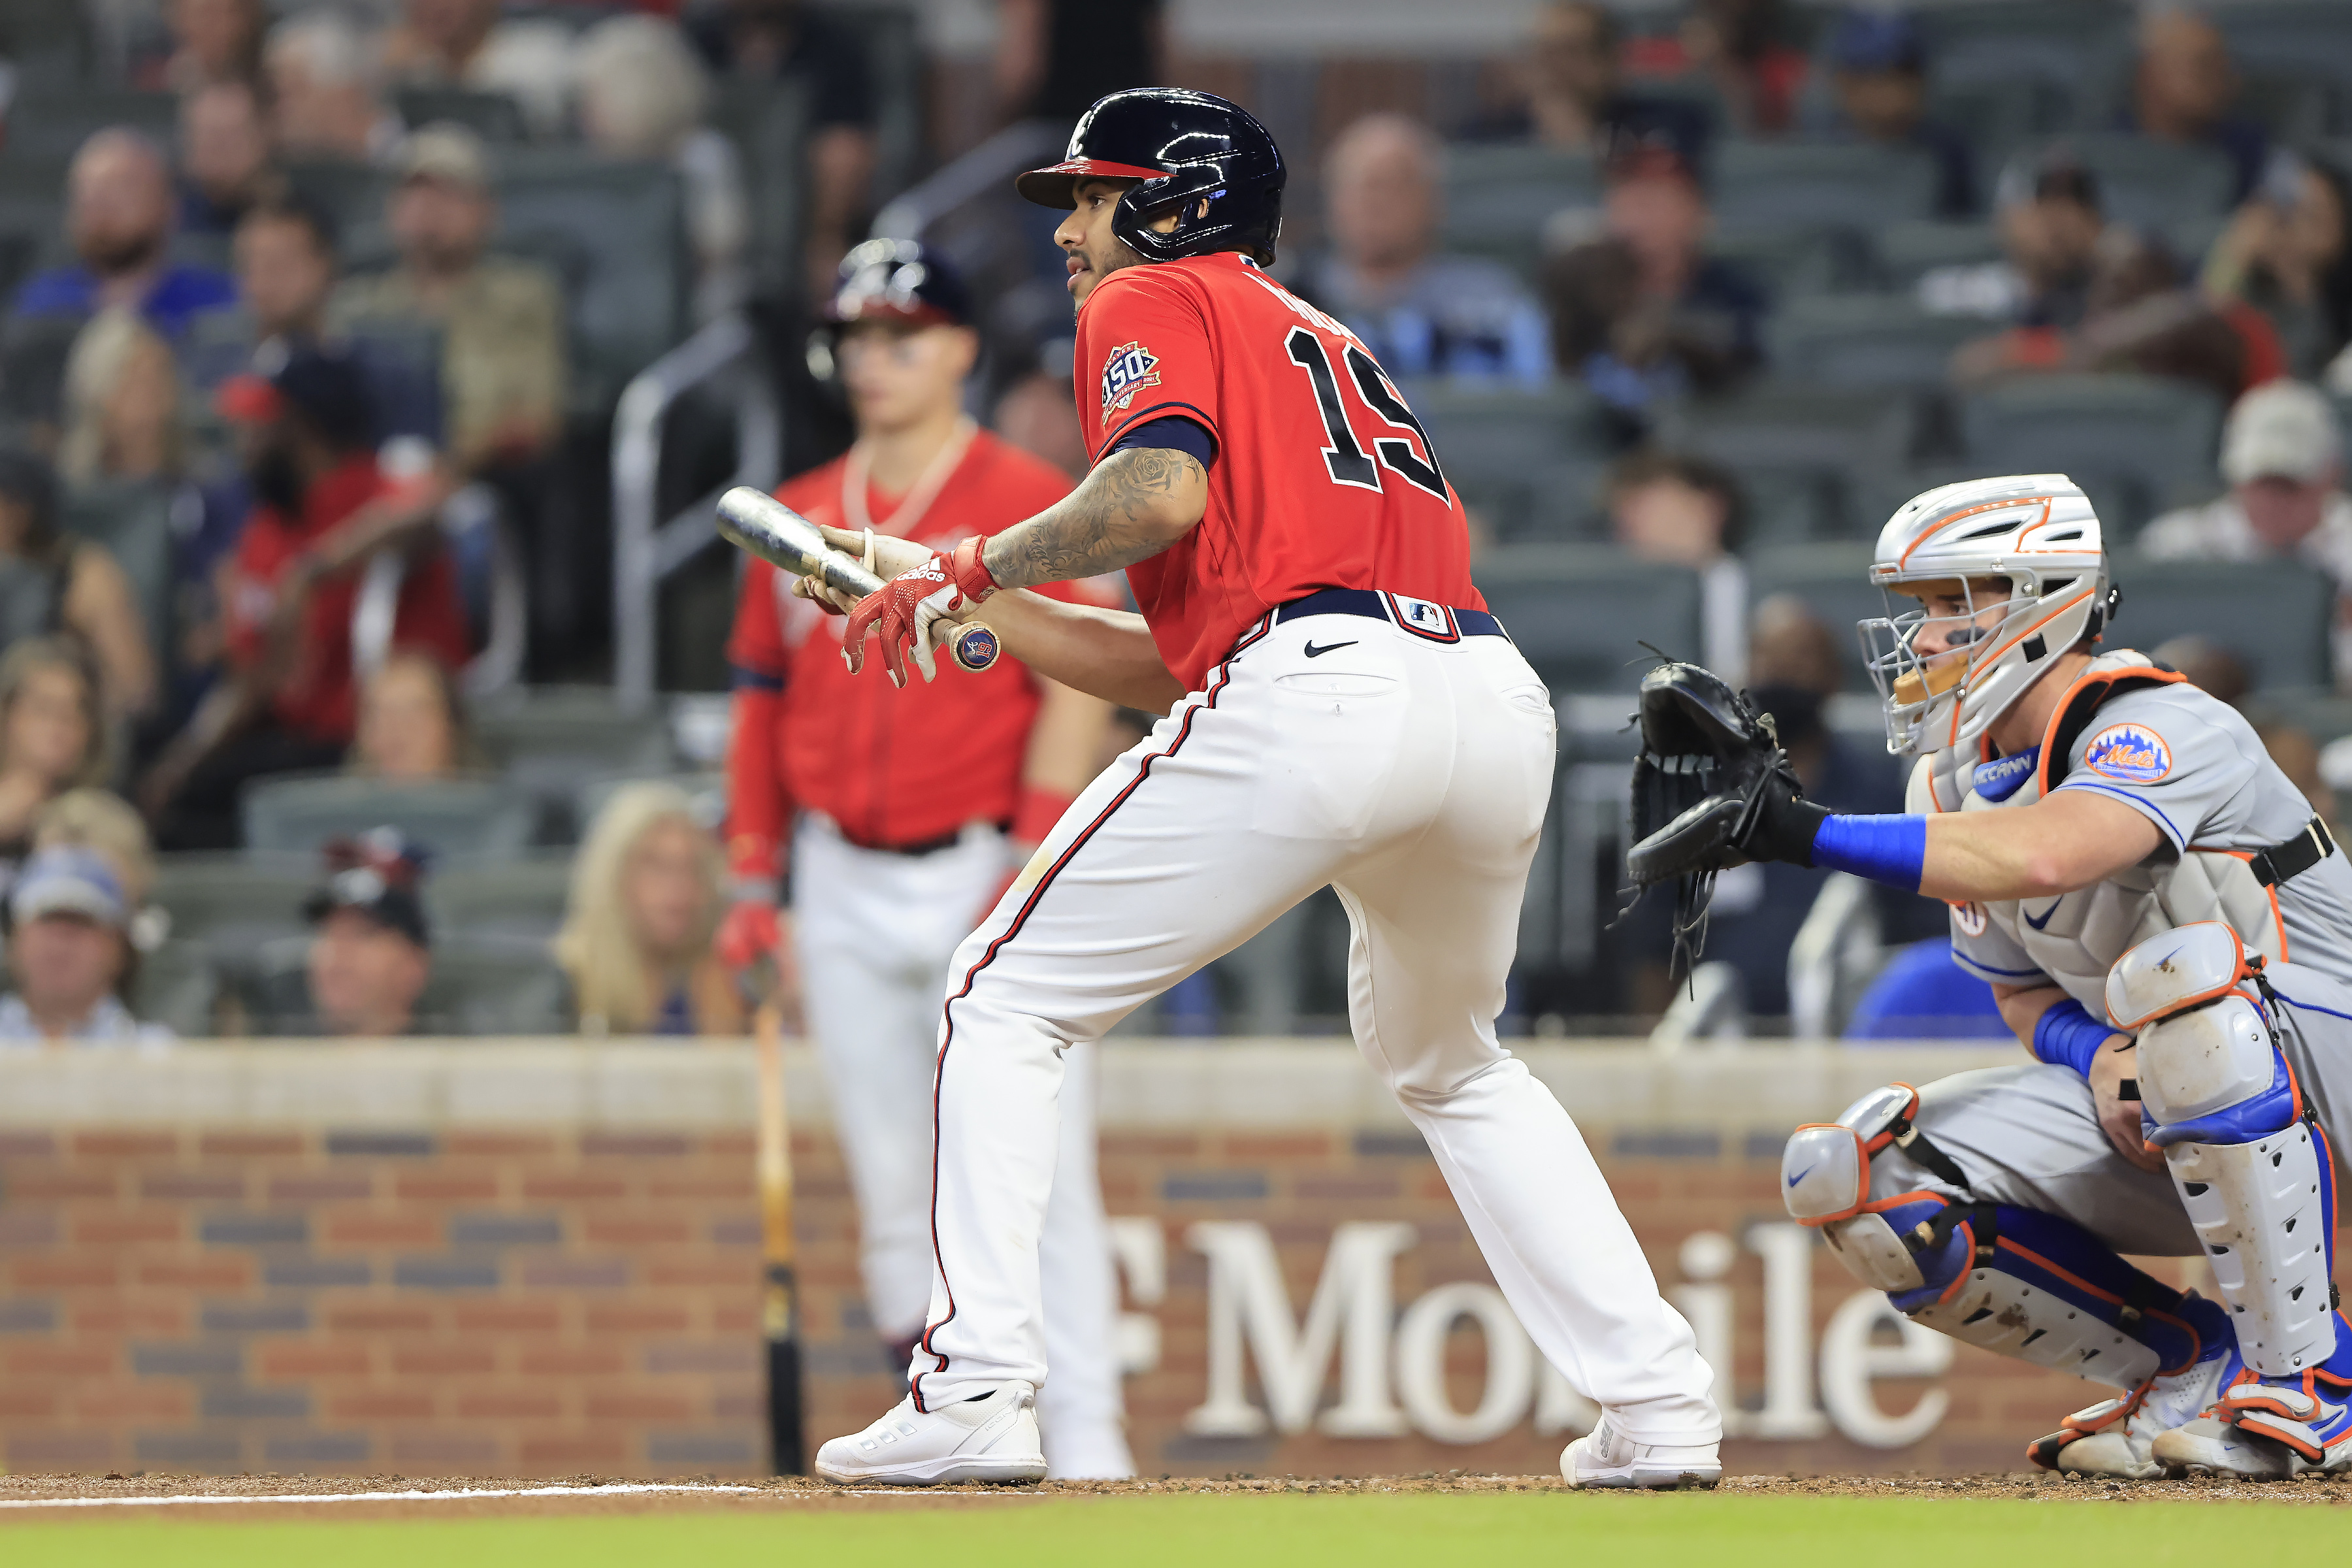 Braves Scratch Huascar Ynoa From Game 4 Start in NLCS vs Dodgers